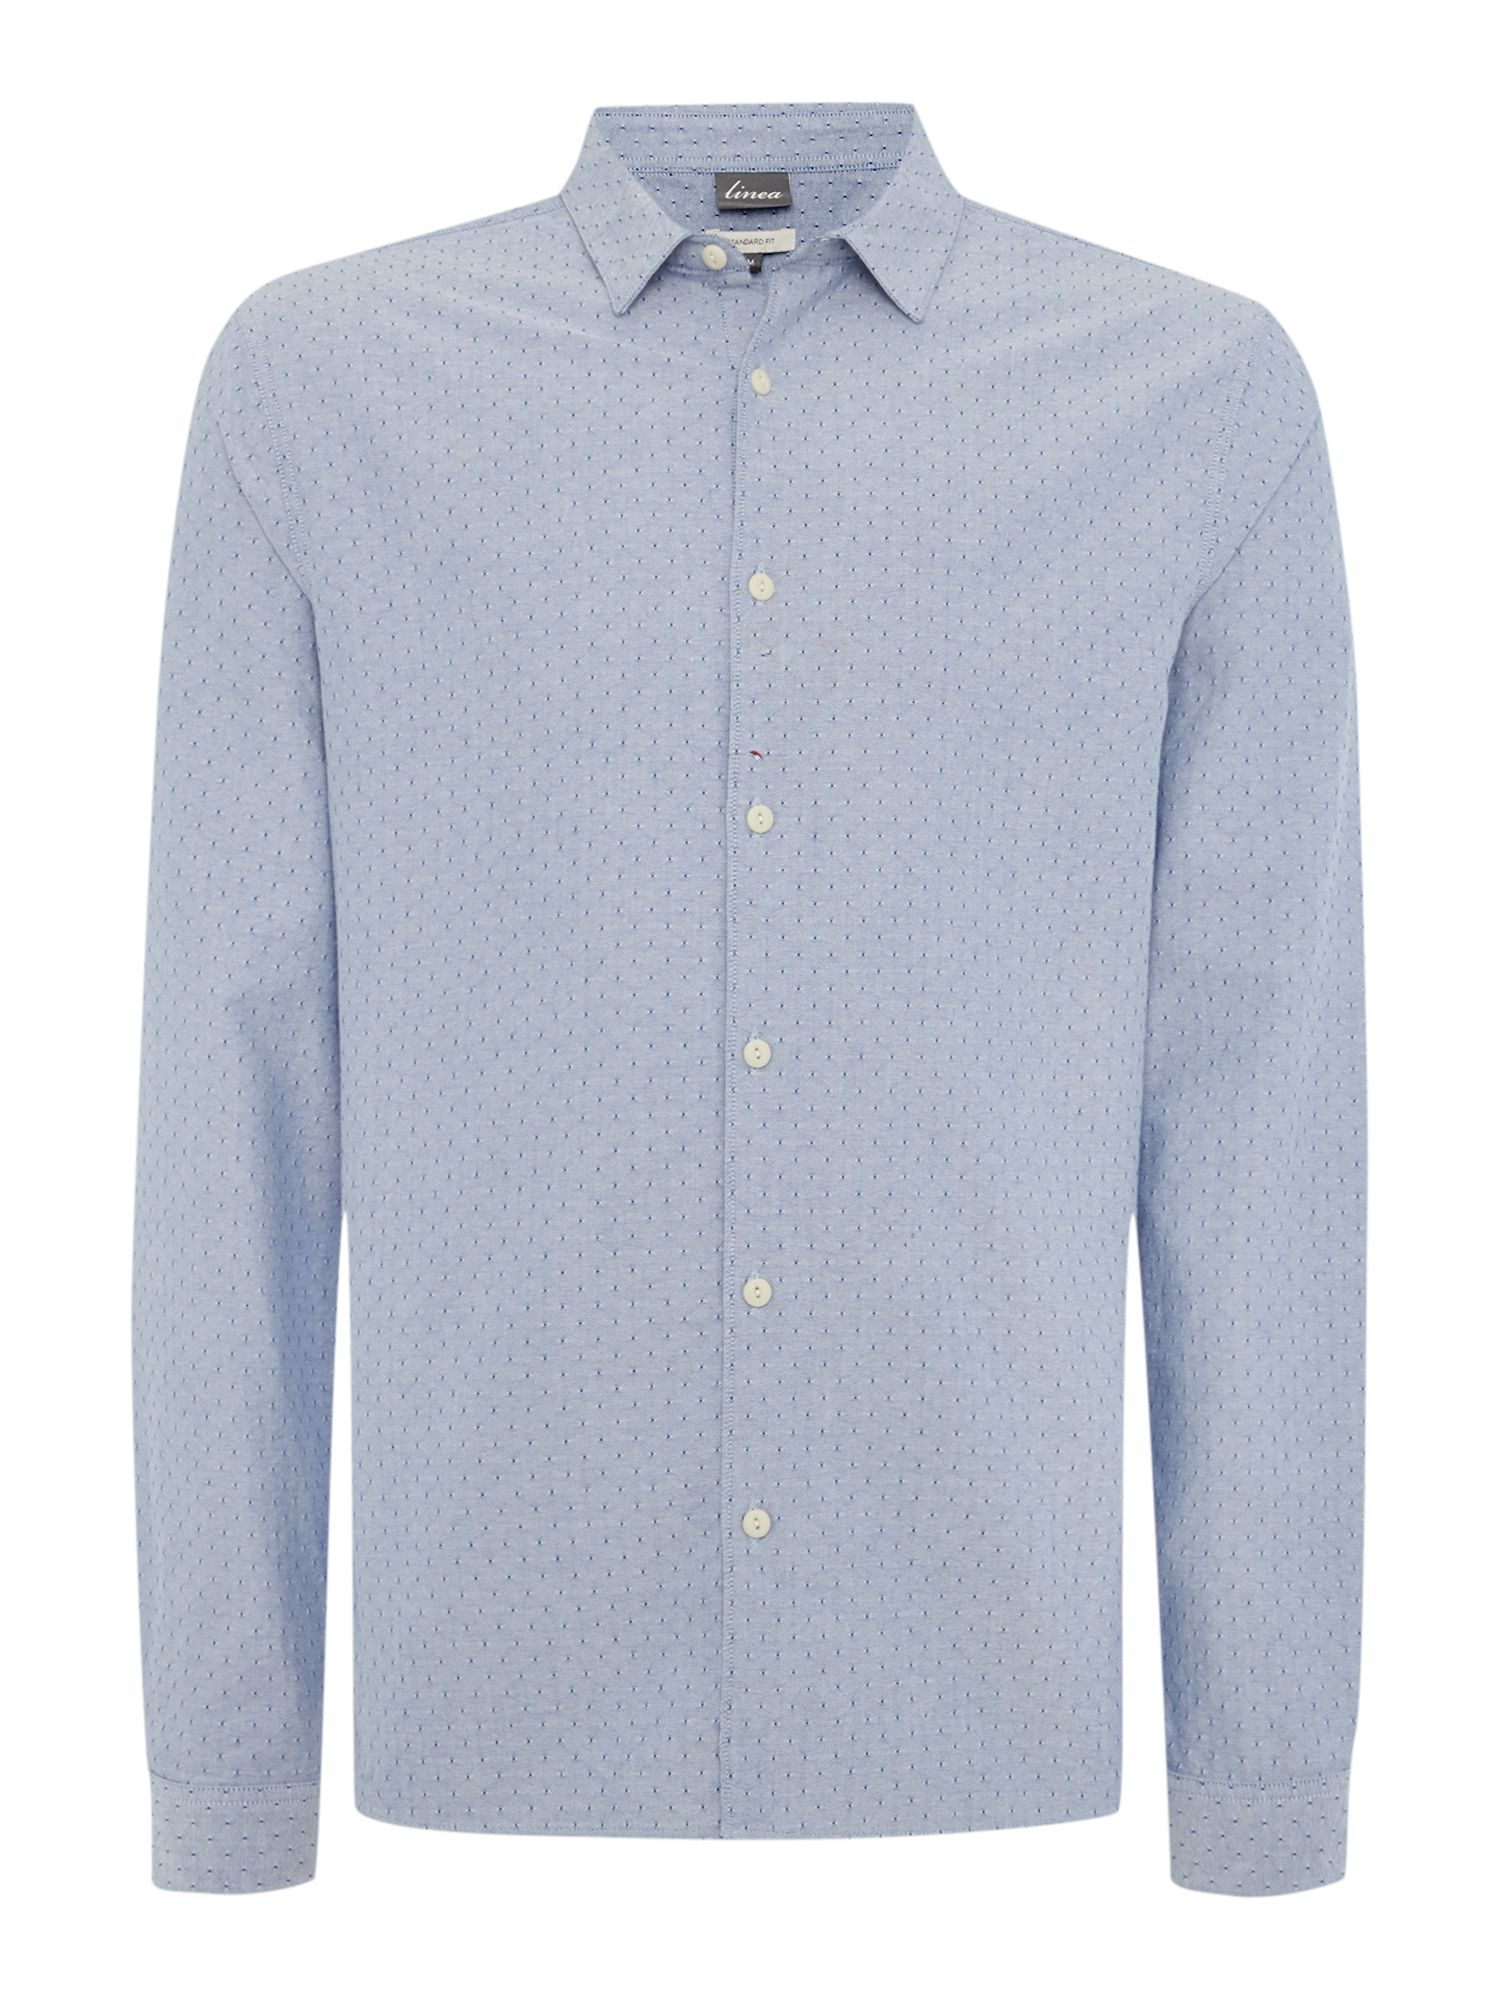 Curbar dobby oxford long sleeved shirt